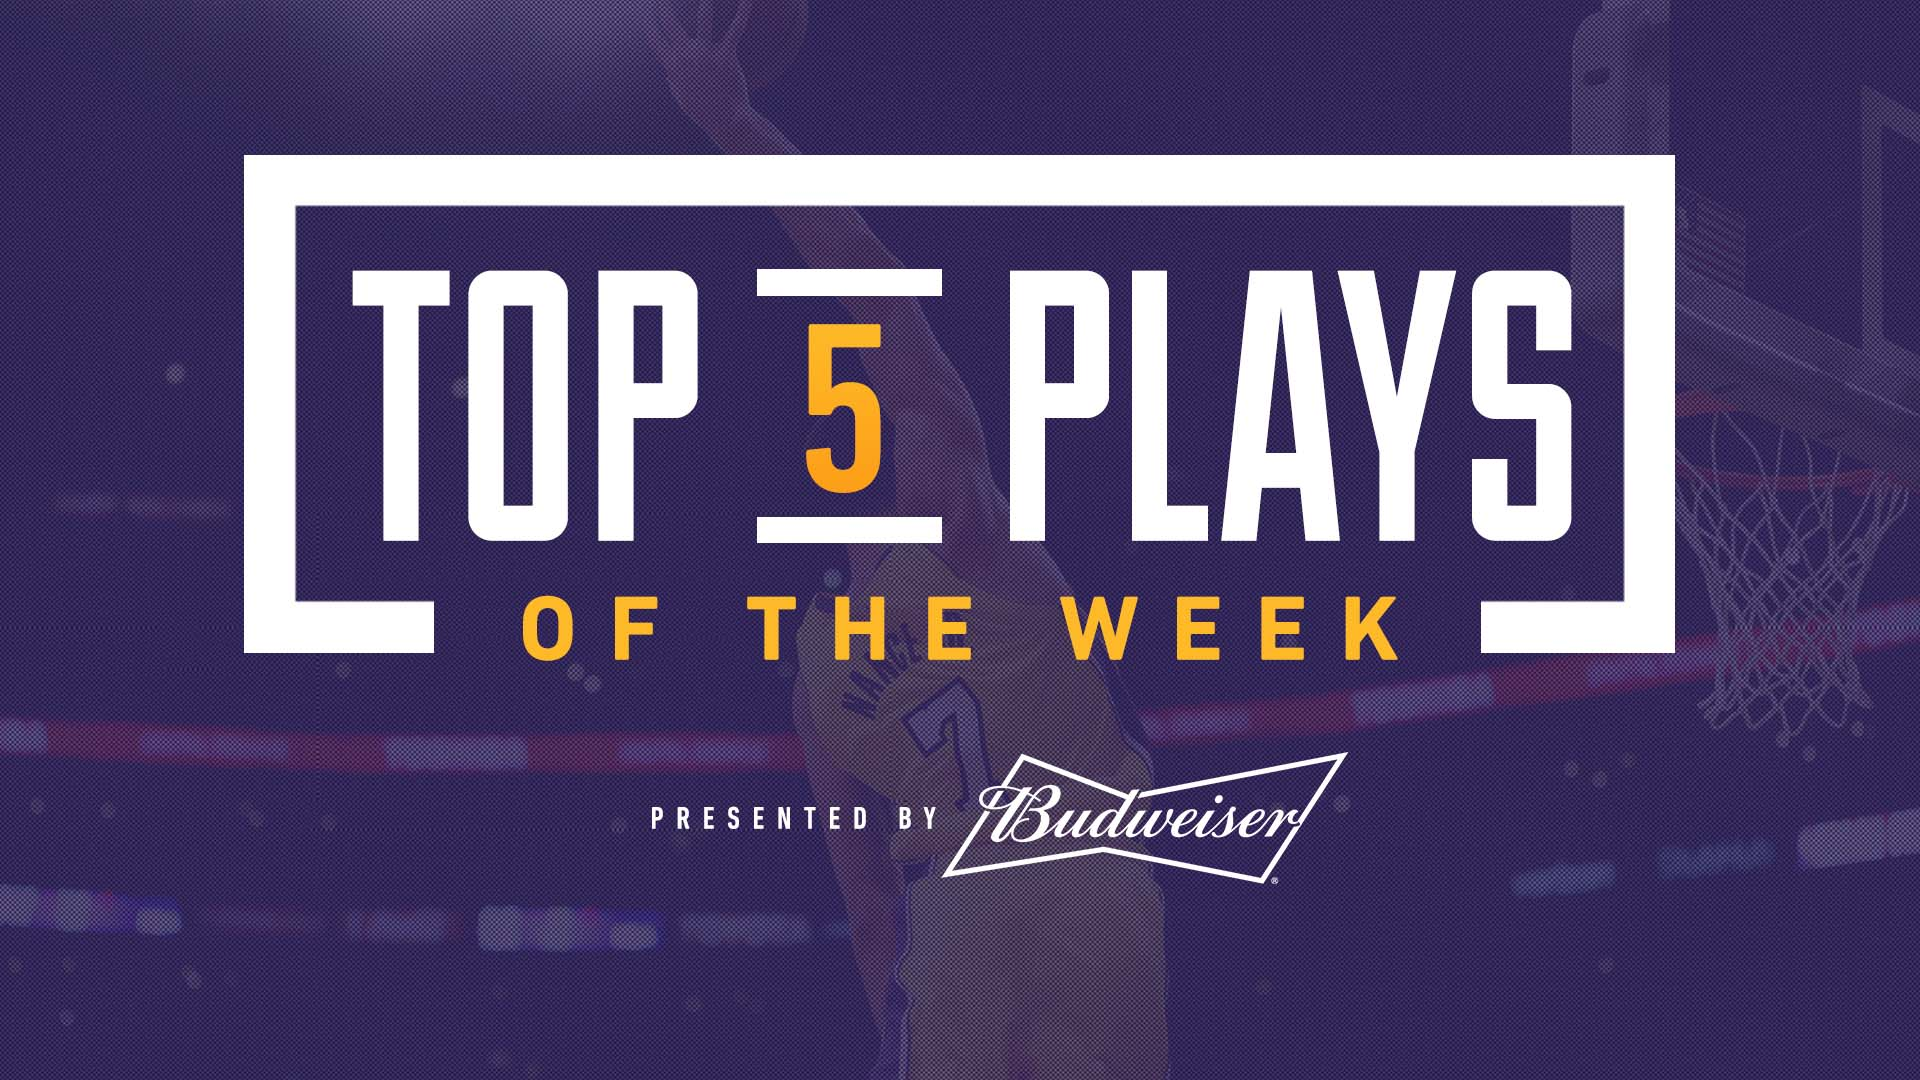 �� Larry Nance Jr. once again rises to the top of this week's top plays, presented by @budweiserusa https://t.co/0pJ78lFWPy